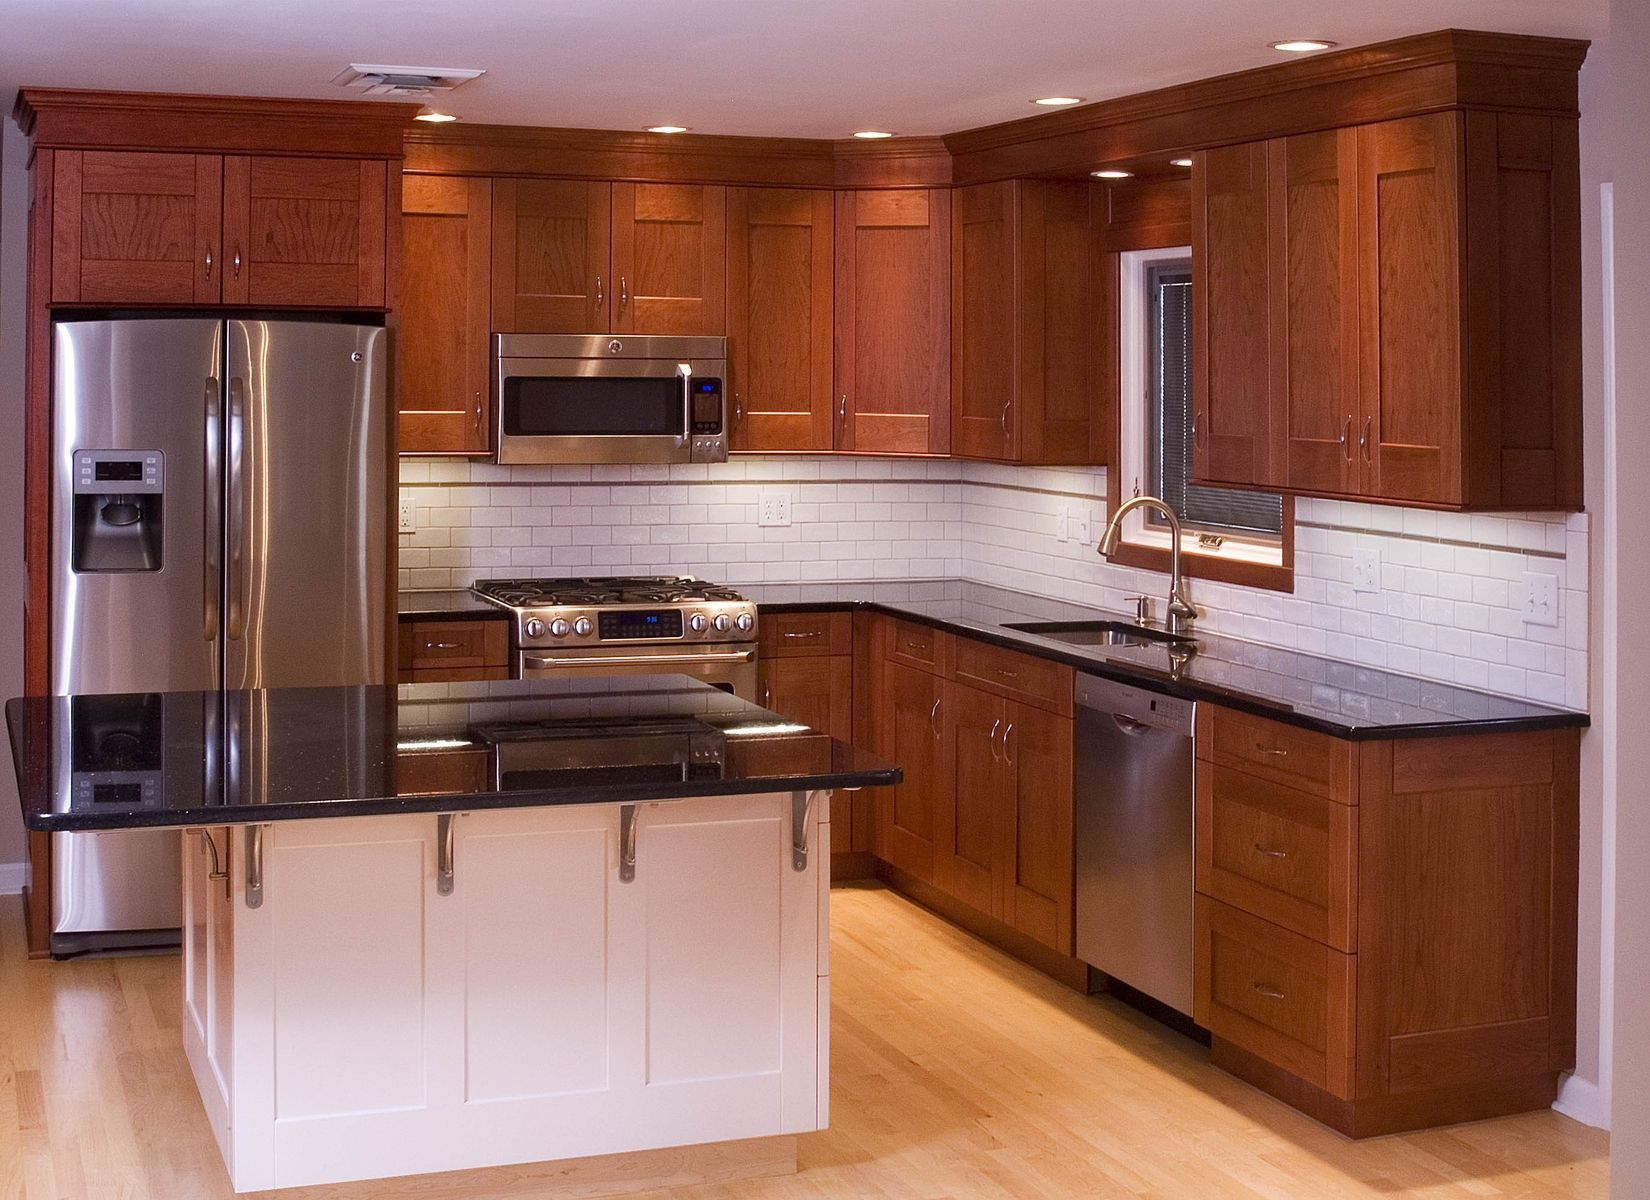 2019 Mahogany Kitchen Cabinet Doors Best Kitchen Cabinet Ideas Check More At Http Www Planetgr Cherry Cabinets Kitchen Kitchen Remodel Kitchen Remodel Cost